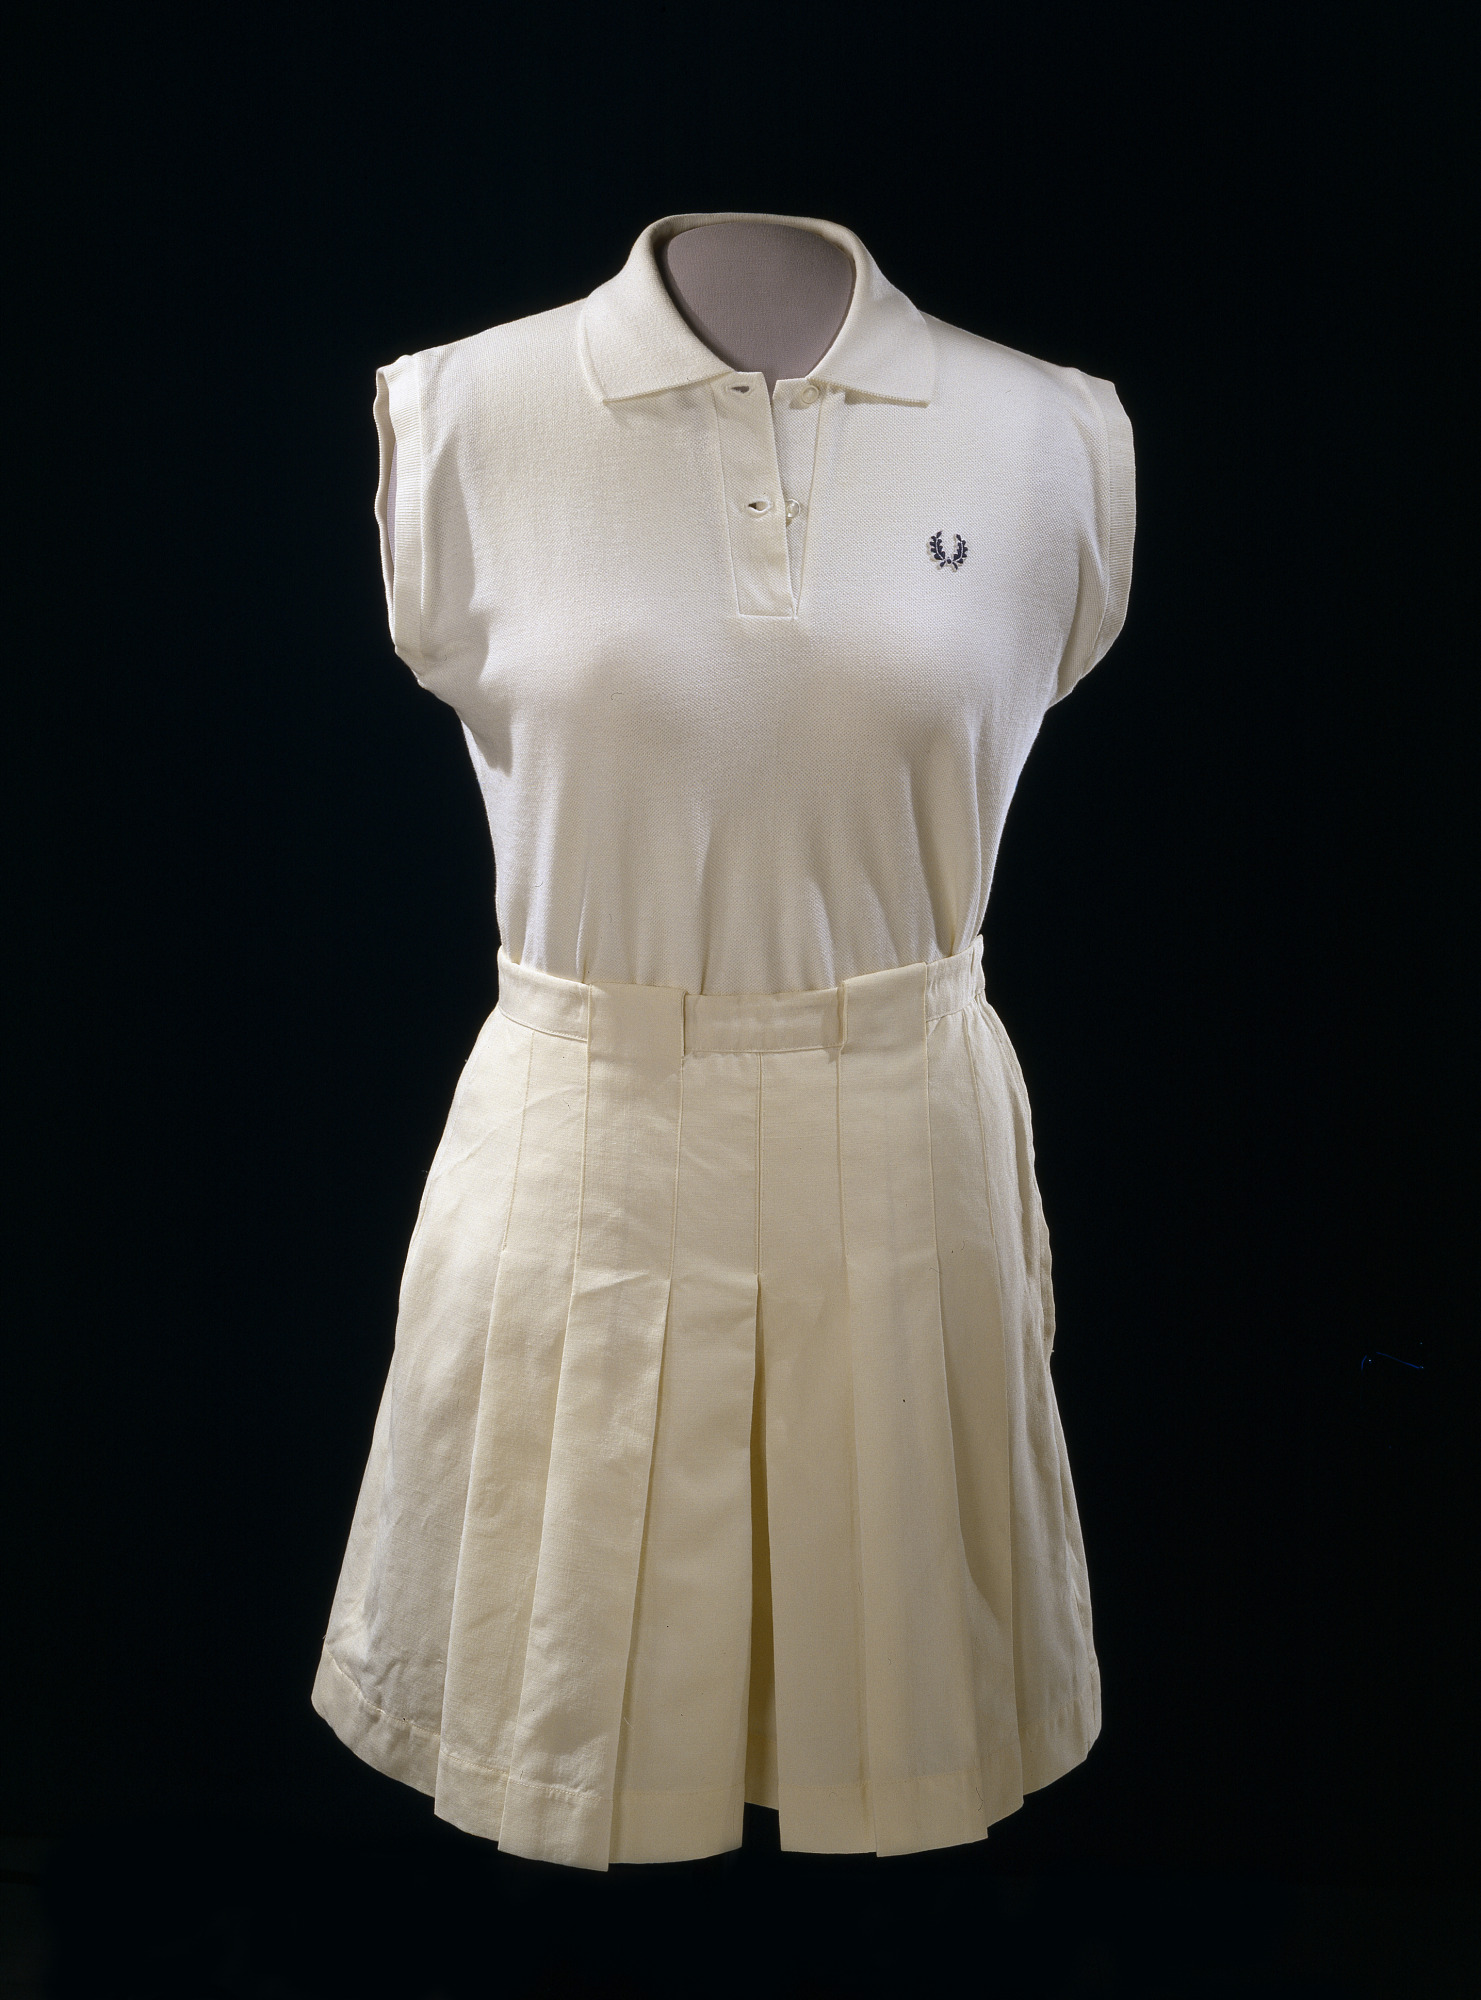 Tennis Outfit, Worn by Althea Gibson